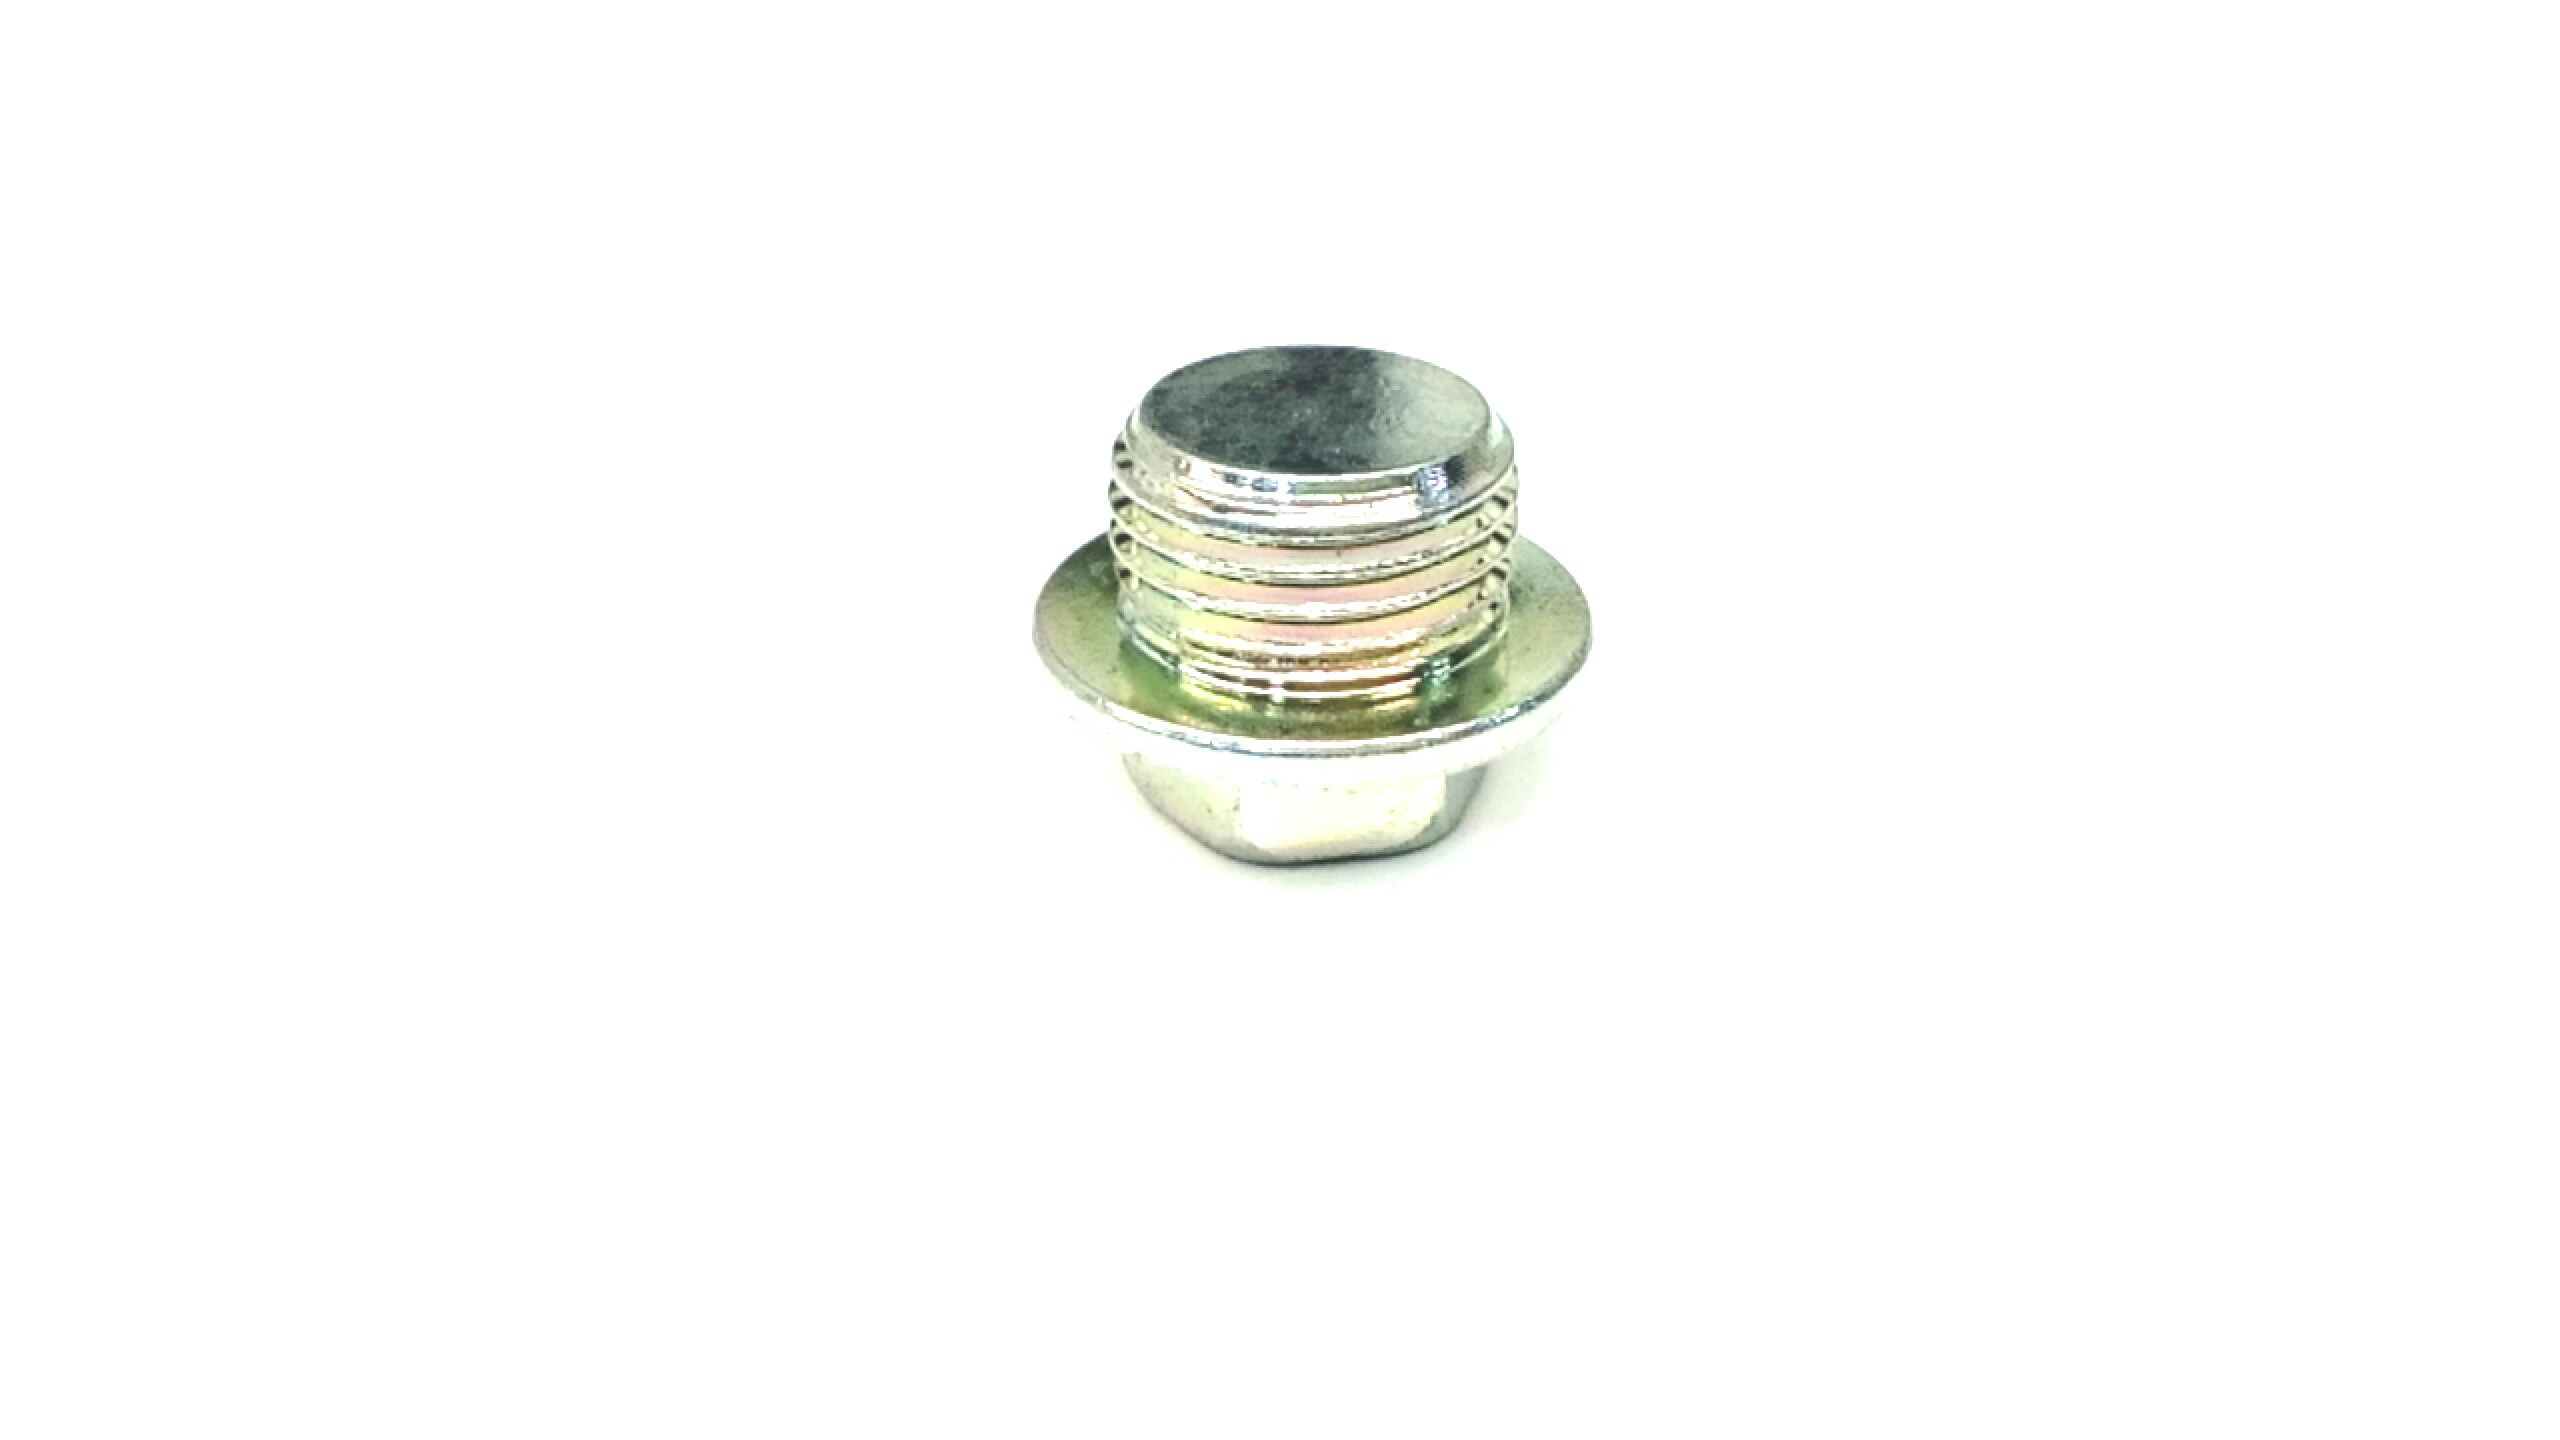 Diagram Drain Plug for your 2012 Subaru Outback